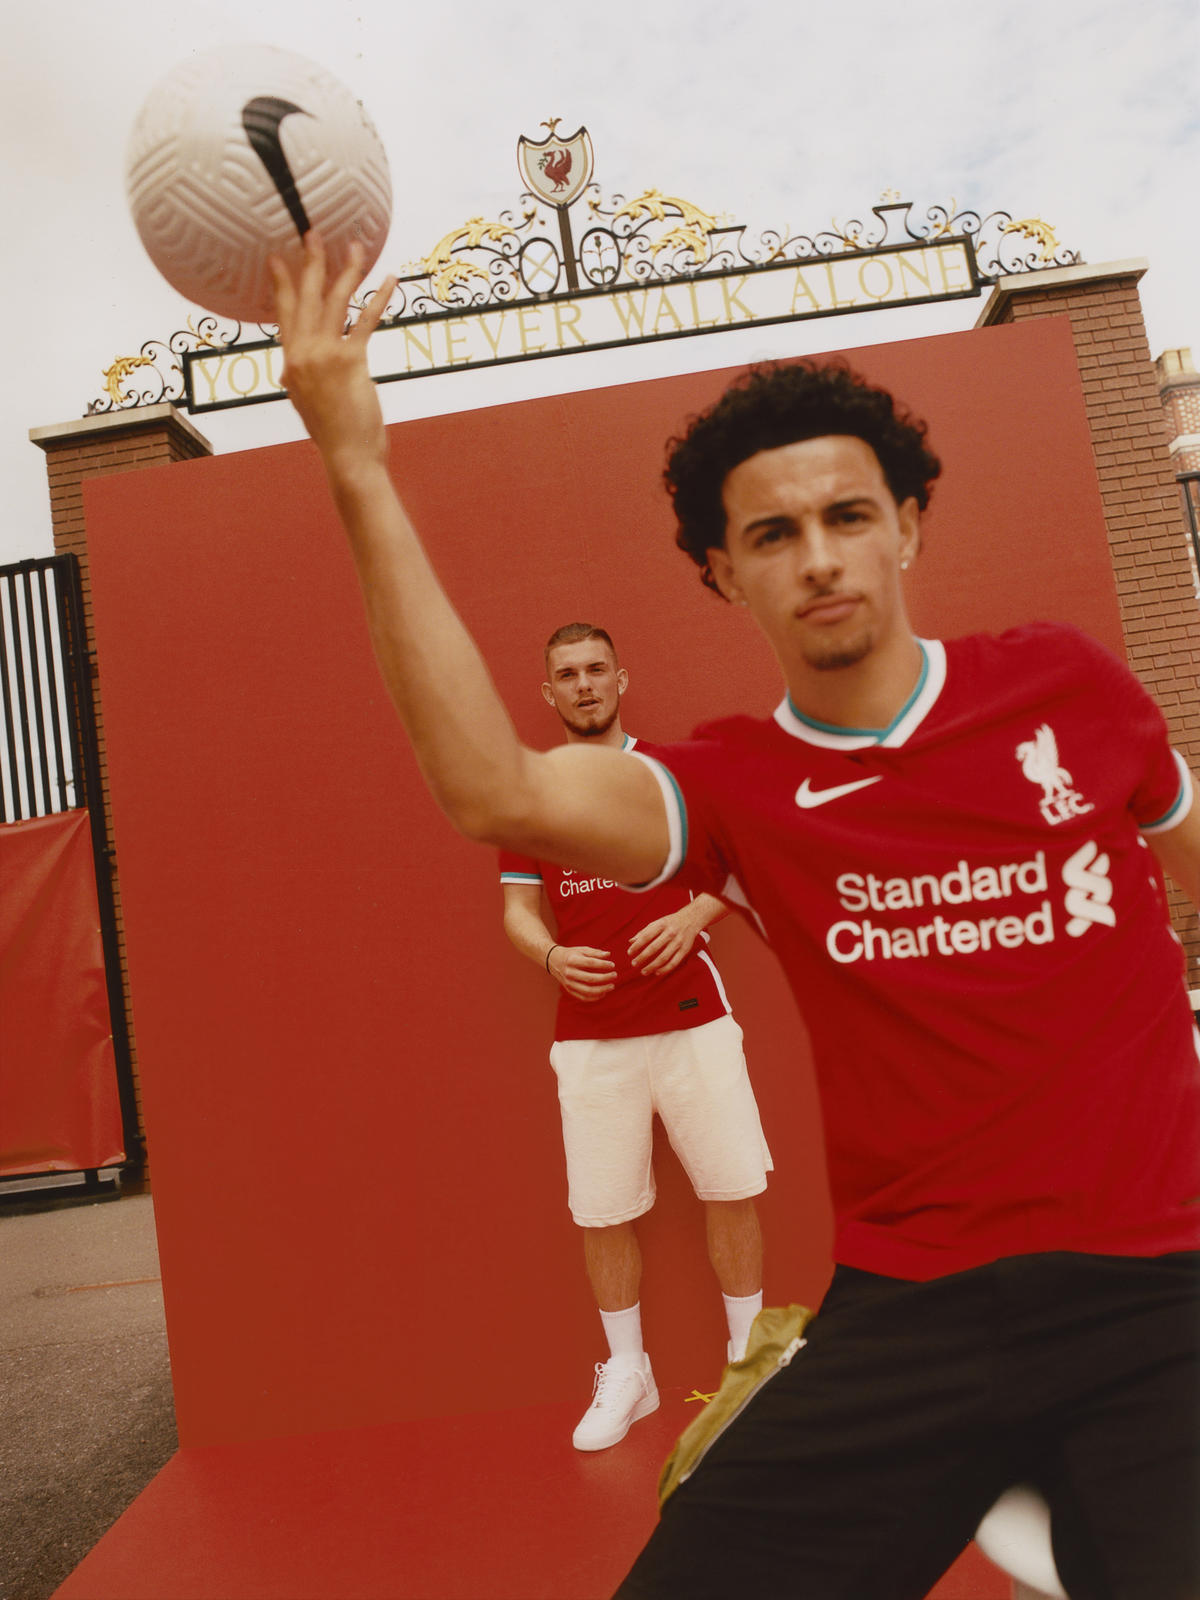 Liverpool Football Club 2020-21 Home Kit 17